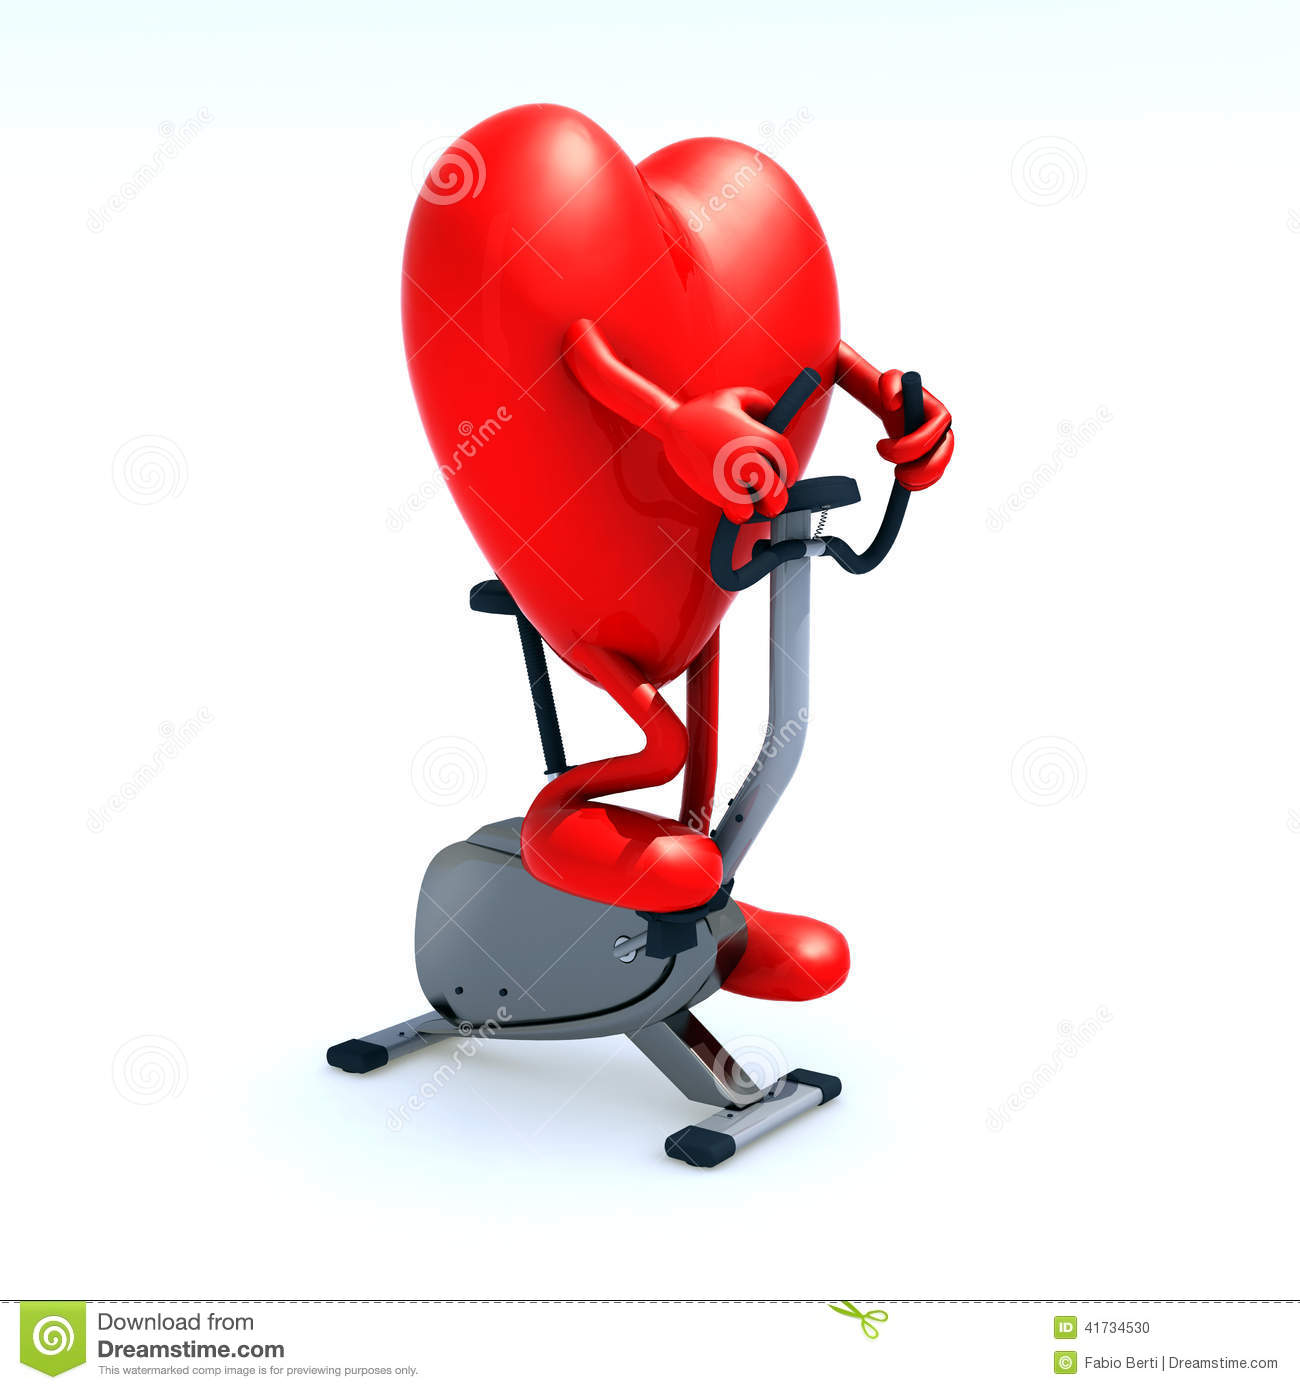 Heart Riding A Bicycle Stock Illustration - Image: 41734530